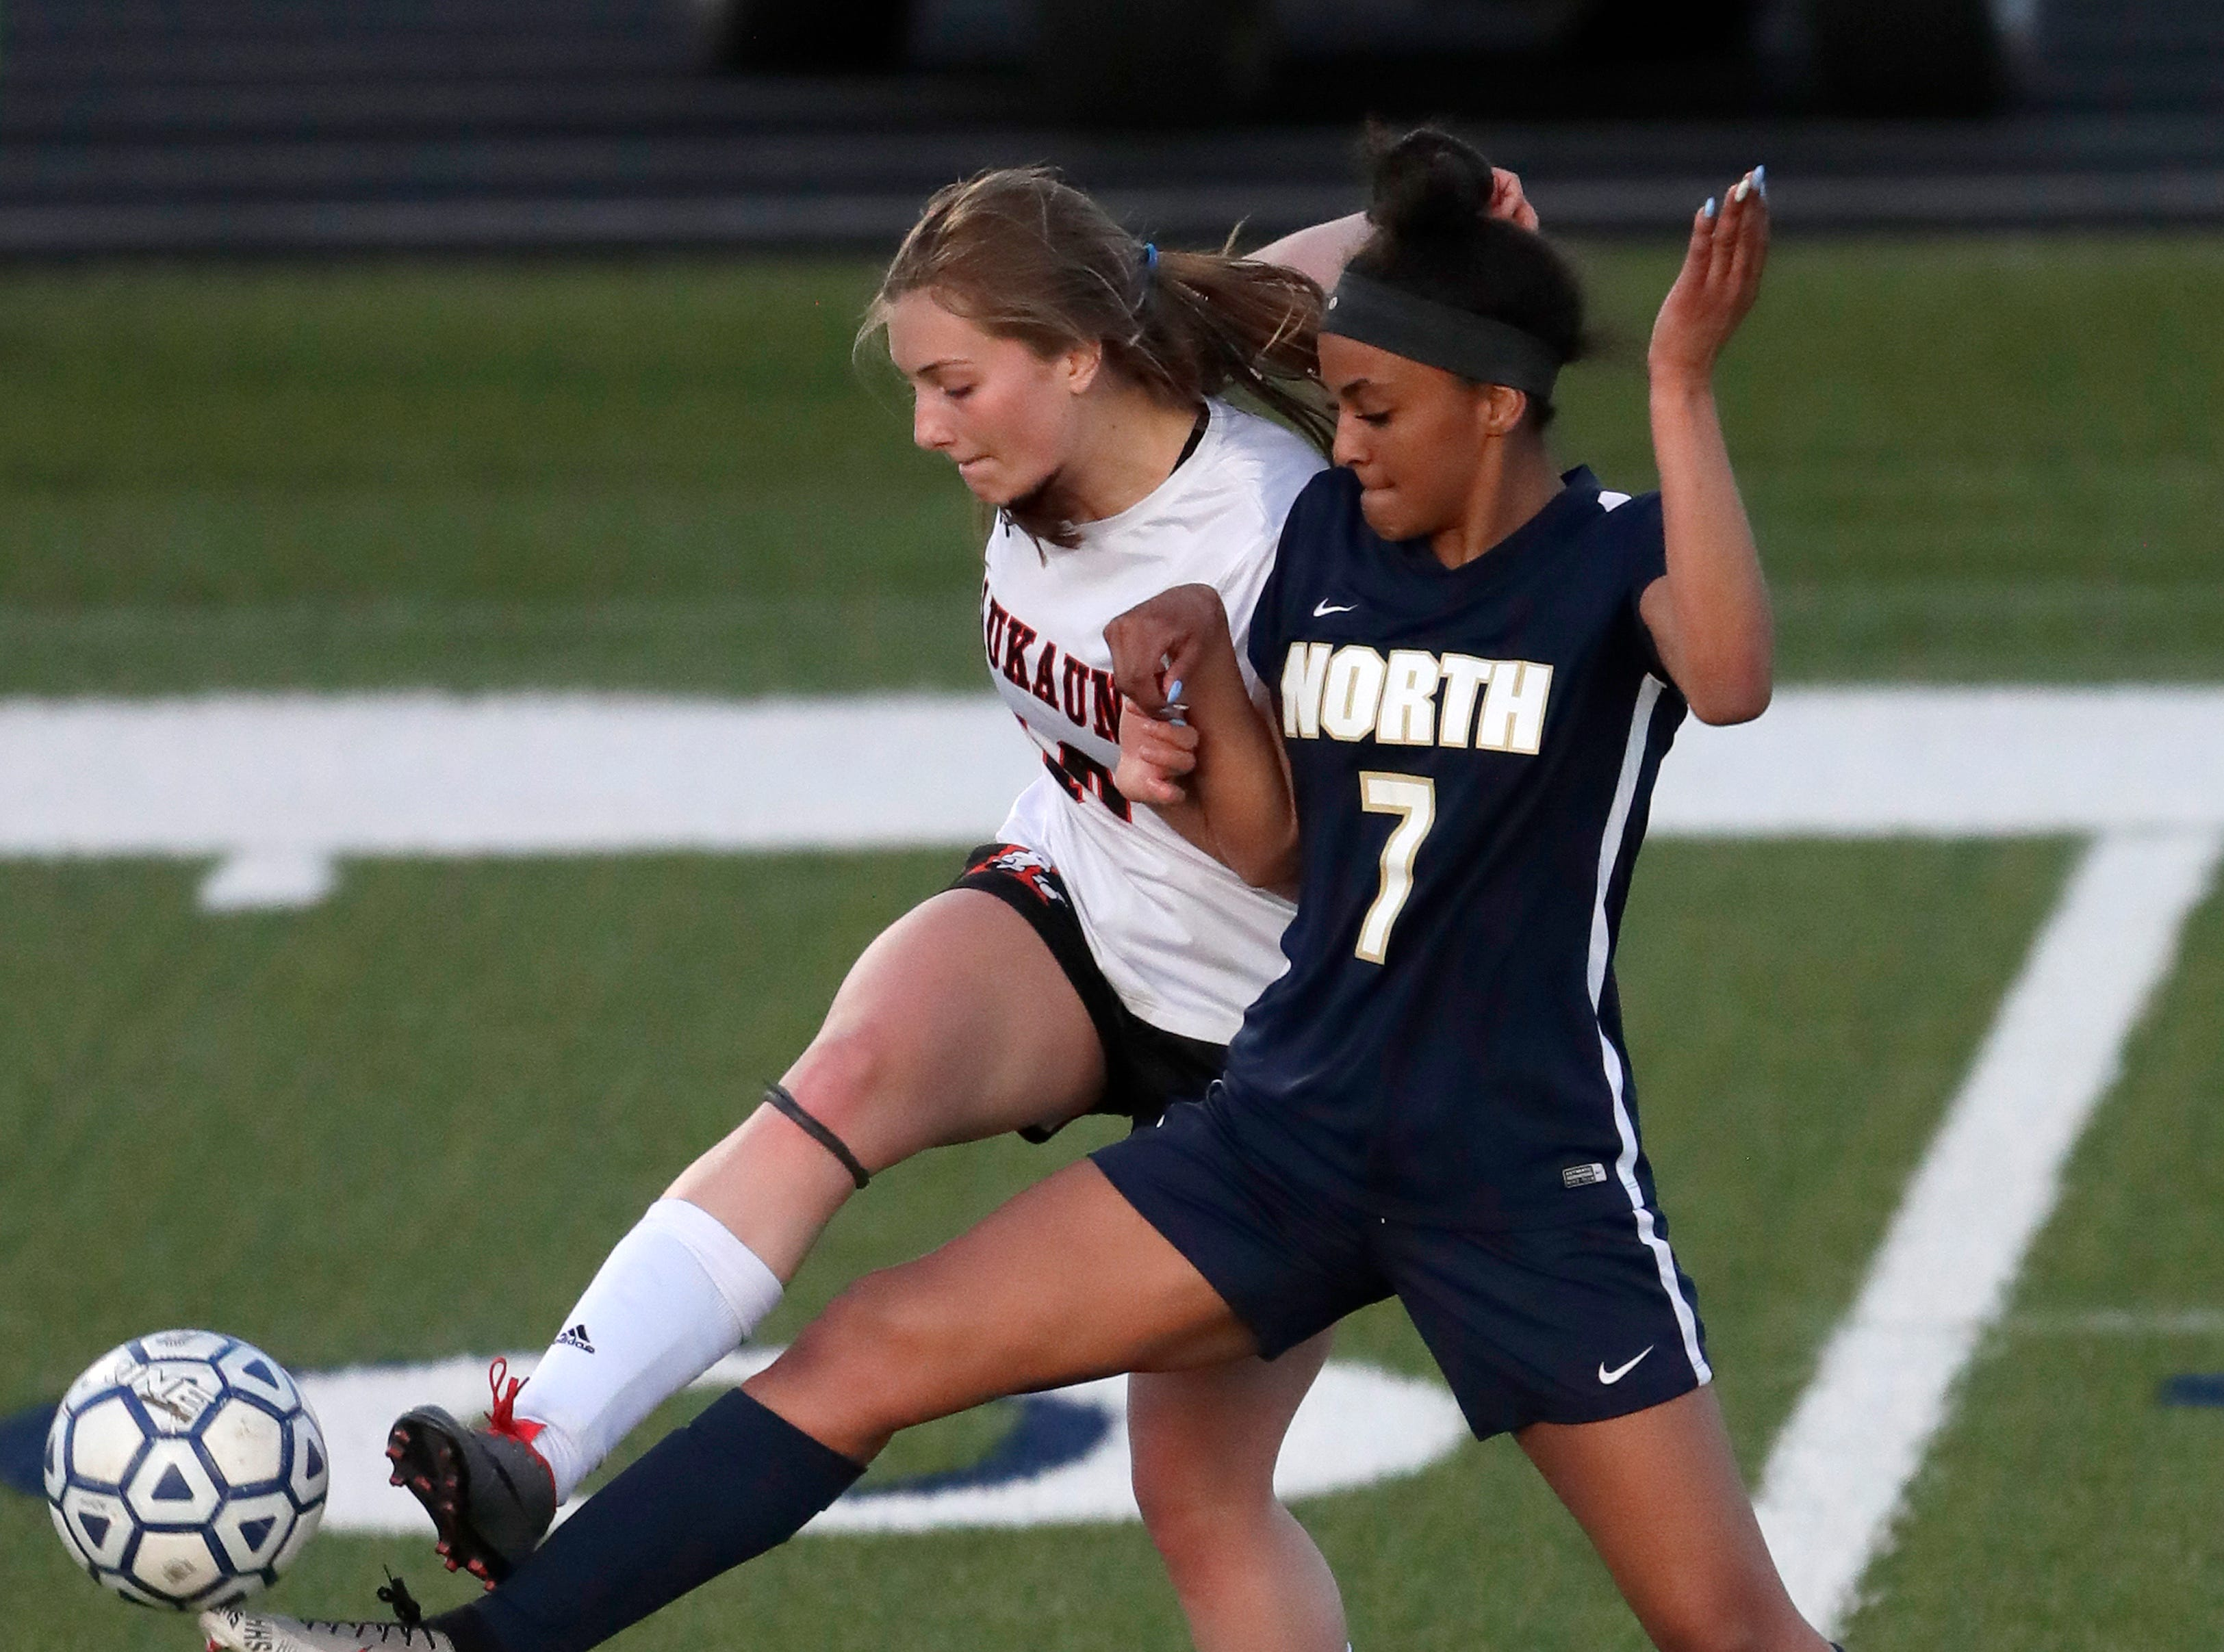 Appleton North High School's Izzie Ruzzicone (7) battles for possession of the ball against Kaukauna High School's Reece Gellerman (10) during their girls soccer game Tuesday, April 23, 2019, in Appleton, Wis. 